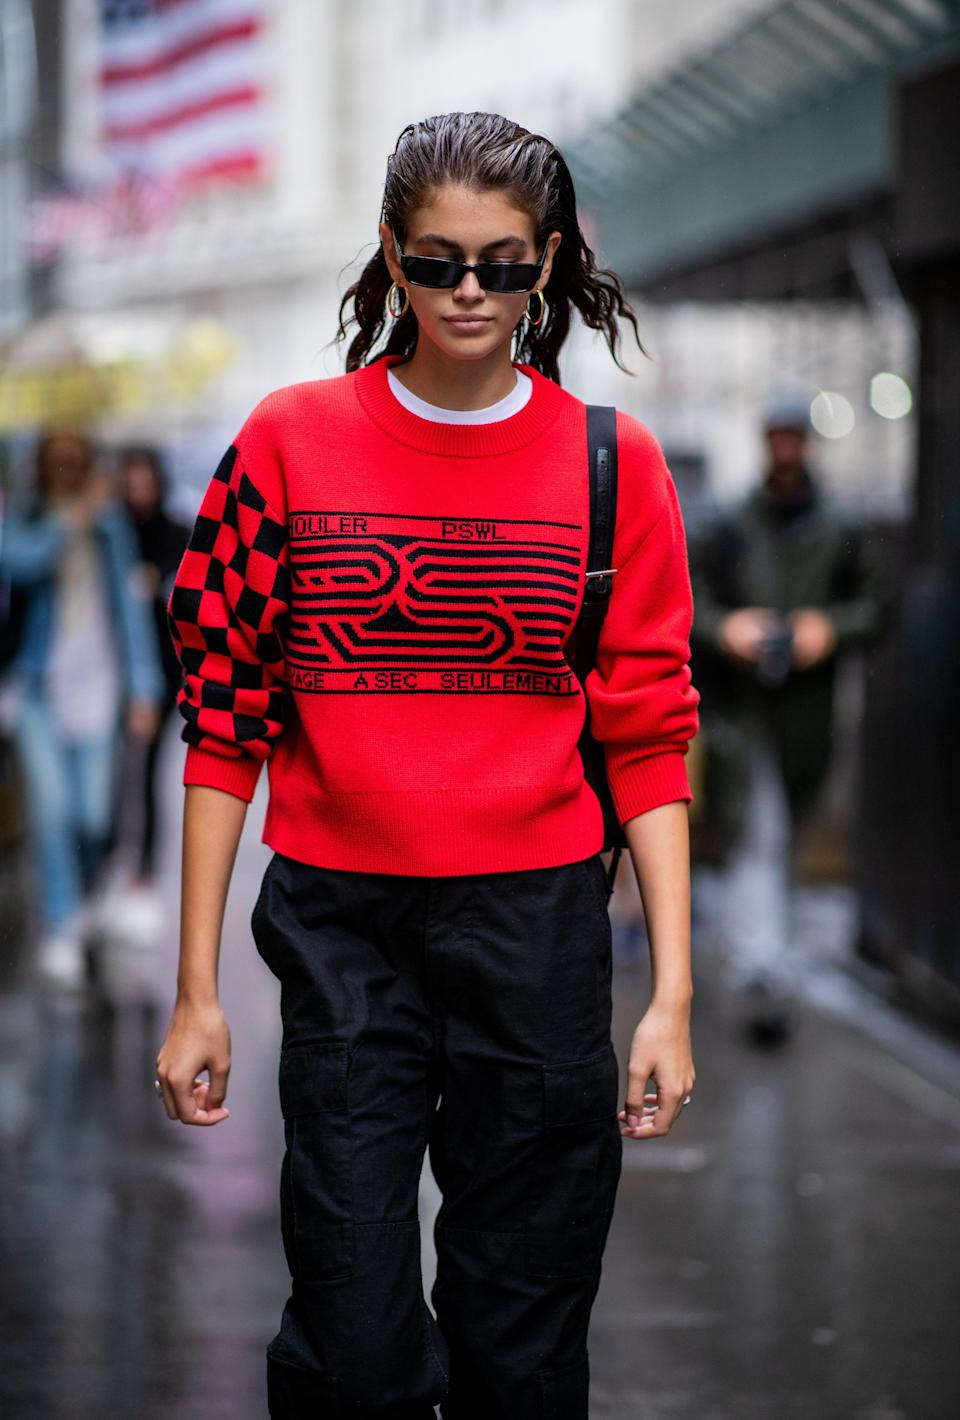 Red (and Proenza Schouler) all over.